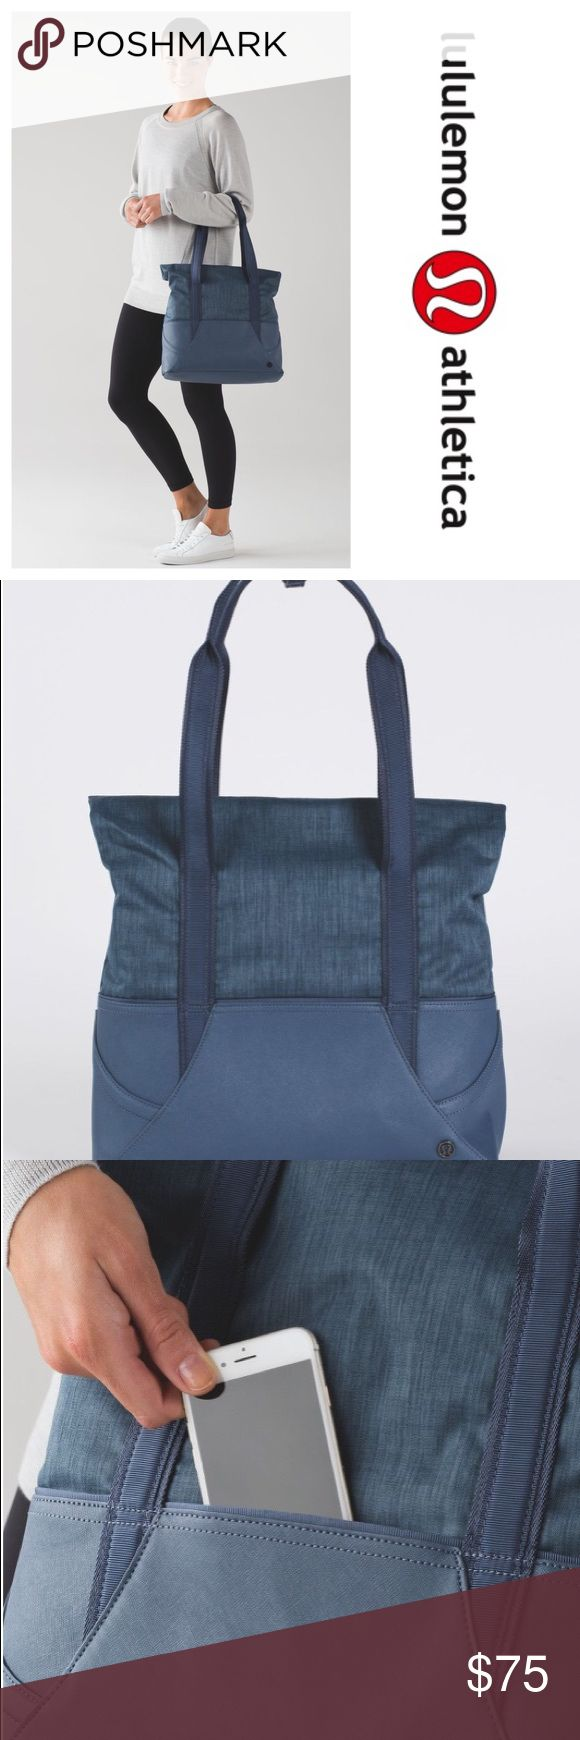 Grab and Go Tote - Like New! Astro Blue Color! This grab-and-go tote was designed with a fold-over top for maximum storage on busy days. Fabric is water-repellent, durable, and easy to wipe clean. Has a fuzzy outter compartment for your phone or glasses so they don't get scratched- and has a loop to keep the straps together for comfort, if you want to use it!  Bag was used 3 times until I realized I needed more space for my yoga blocks! lululemon athletica Bags Totes